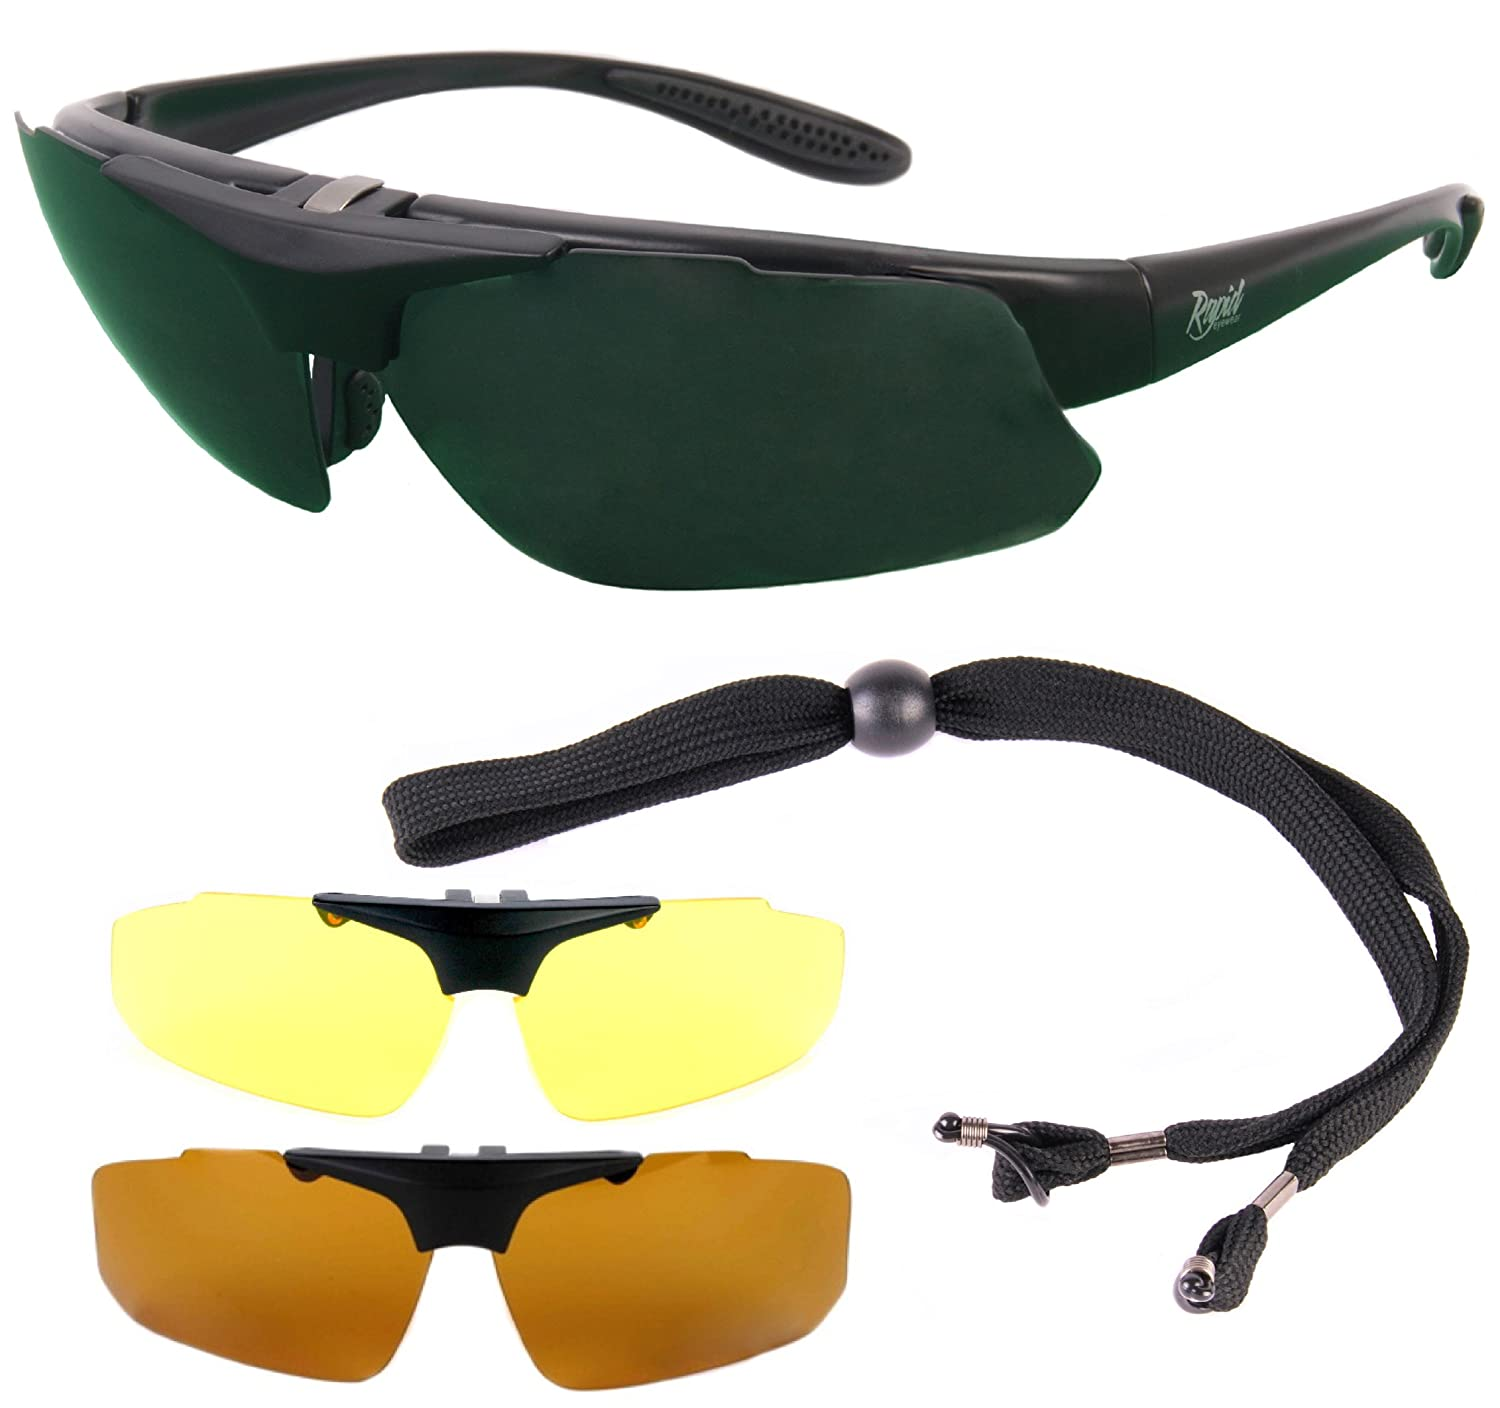 86f4ac6f7d Rapid Eyewear Black Rx GOLF SUNGLASSES Frame for Prescription Spectacle  Wearers